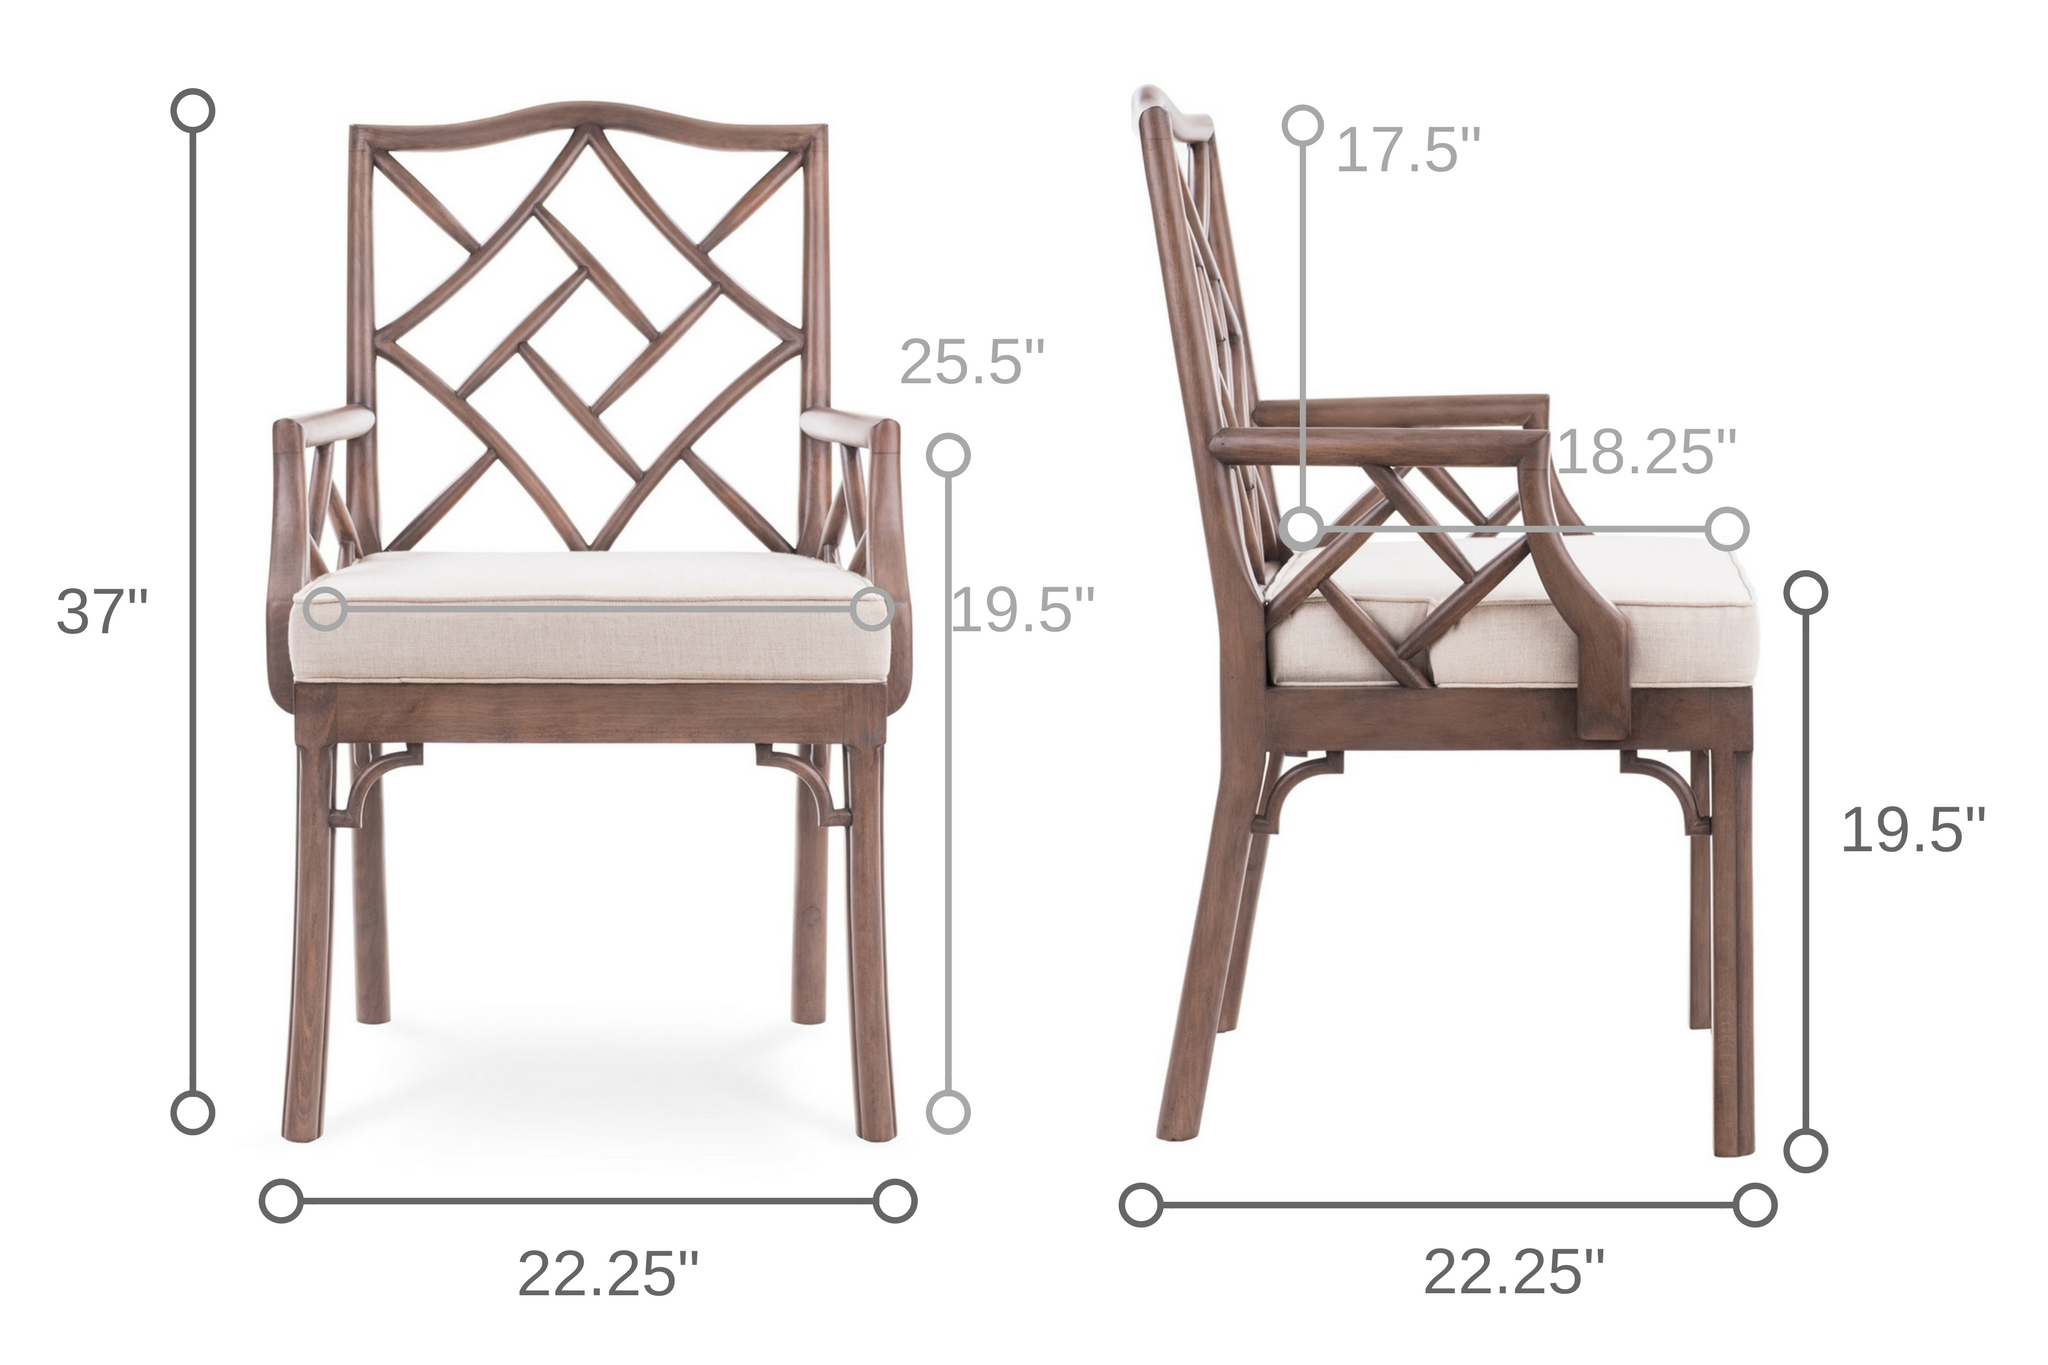 Dowel Furniture James Chinese Chippendale Arm Chair Dimensions